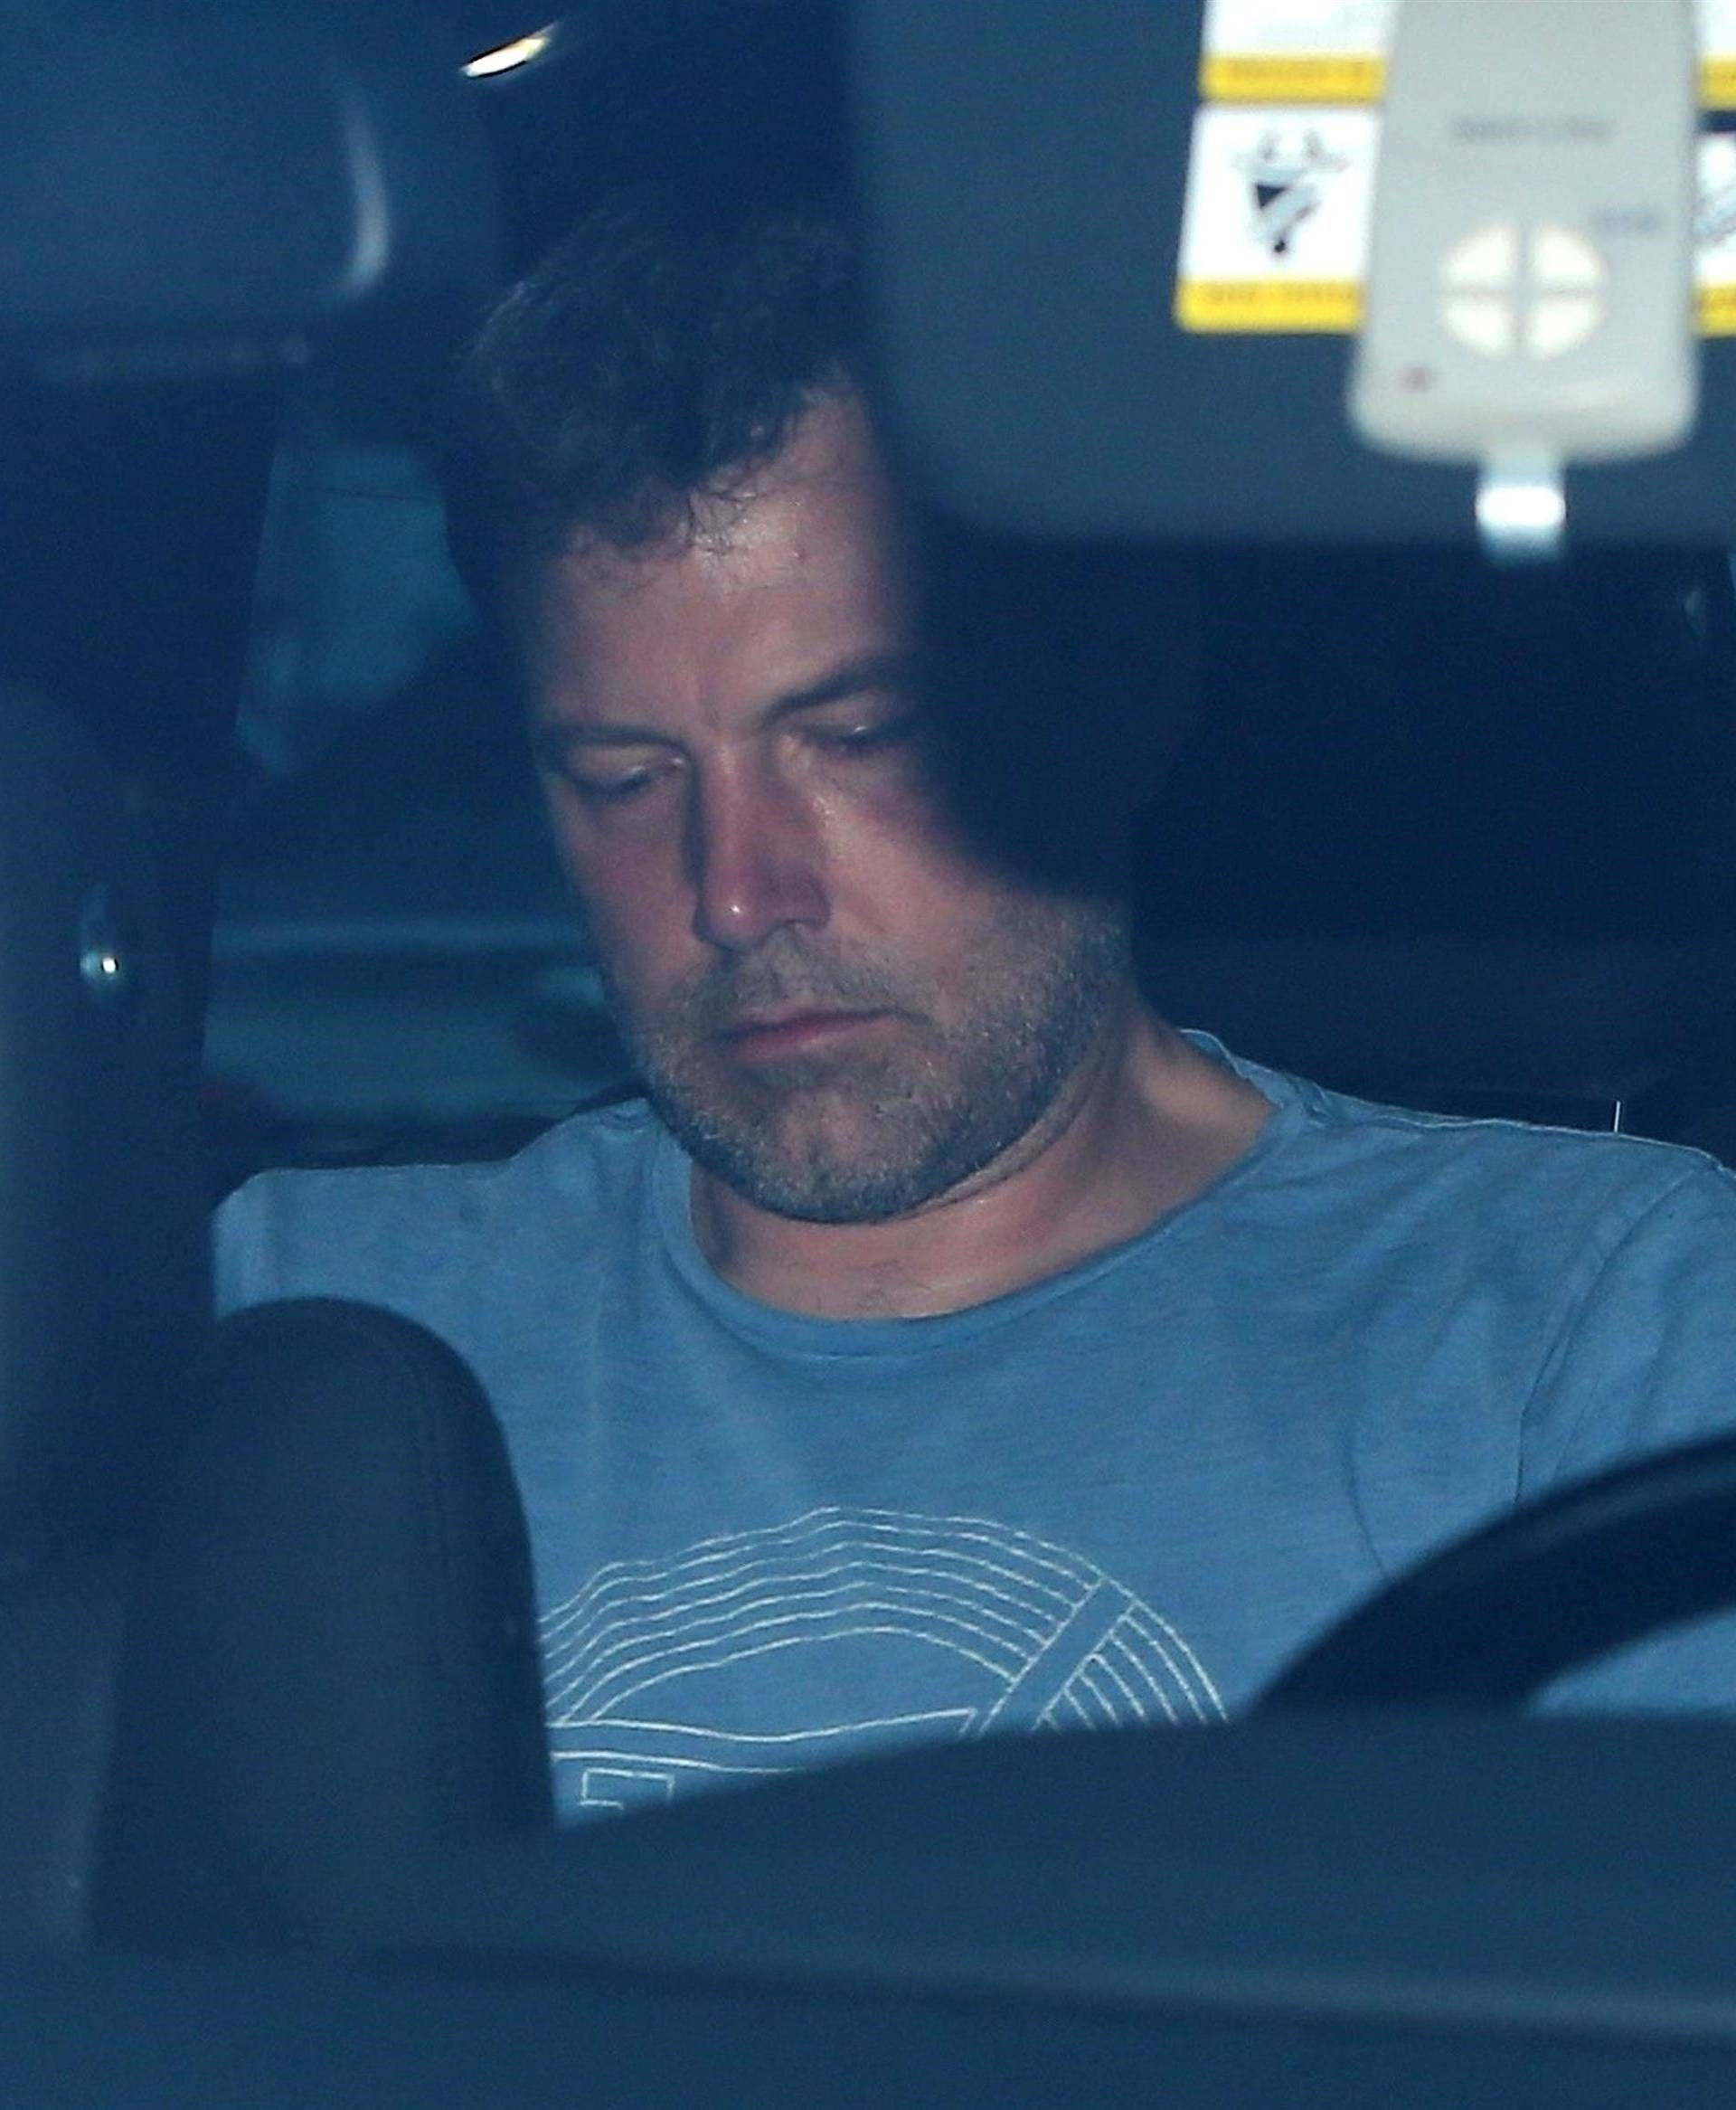 Jennifer Garner shows up to rescue Ben Affleck and check him into rehab!